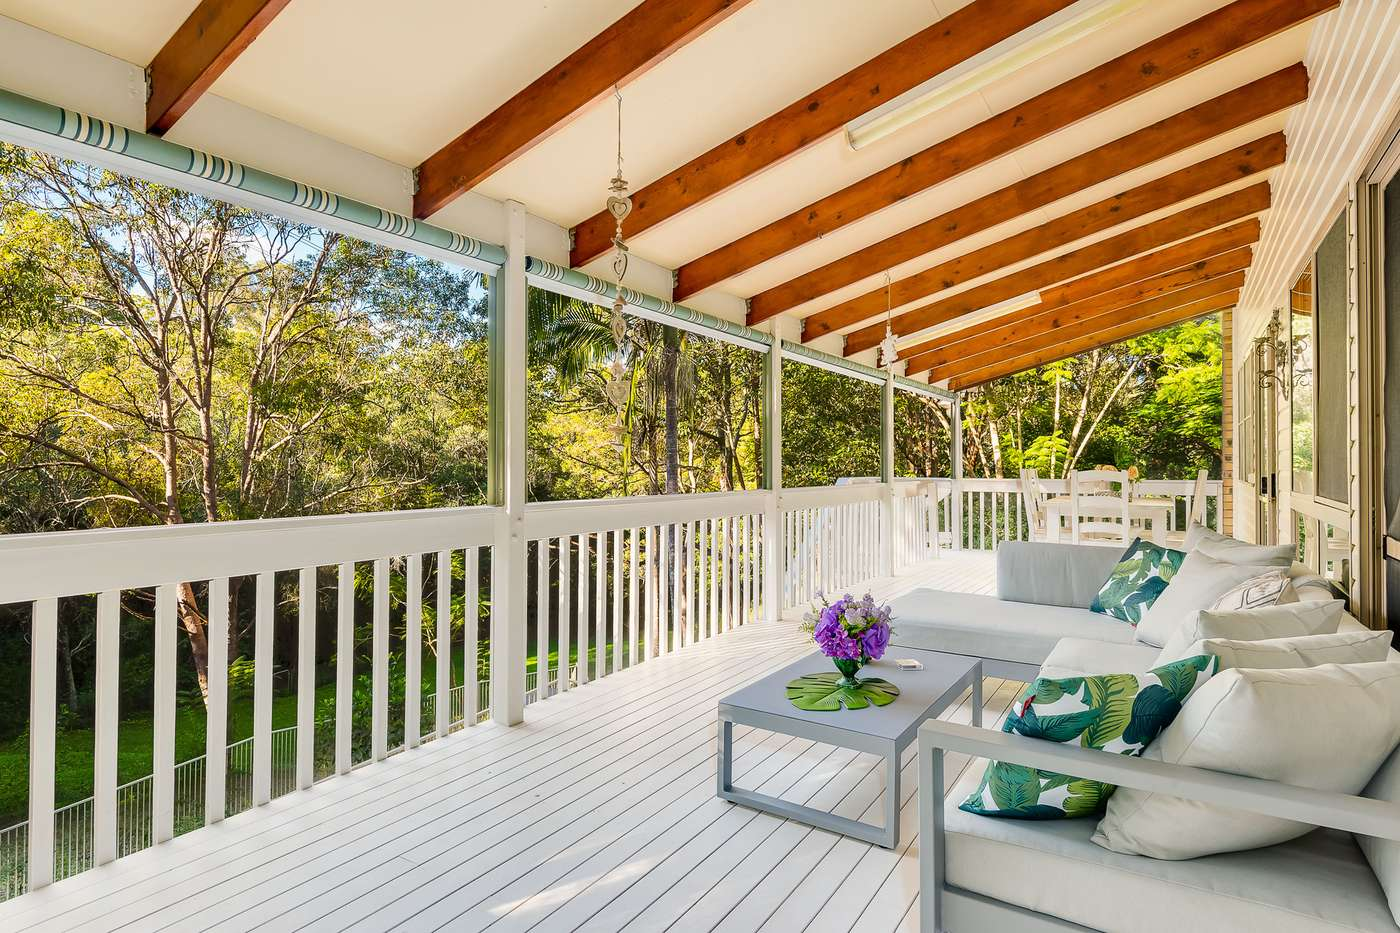 Main view of Homely house listing, 1839 Mount Samson Road, Yugar, QLD 4520